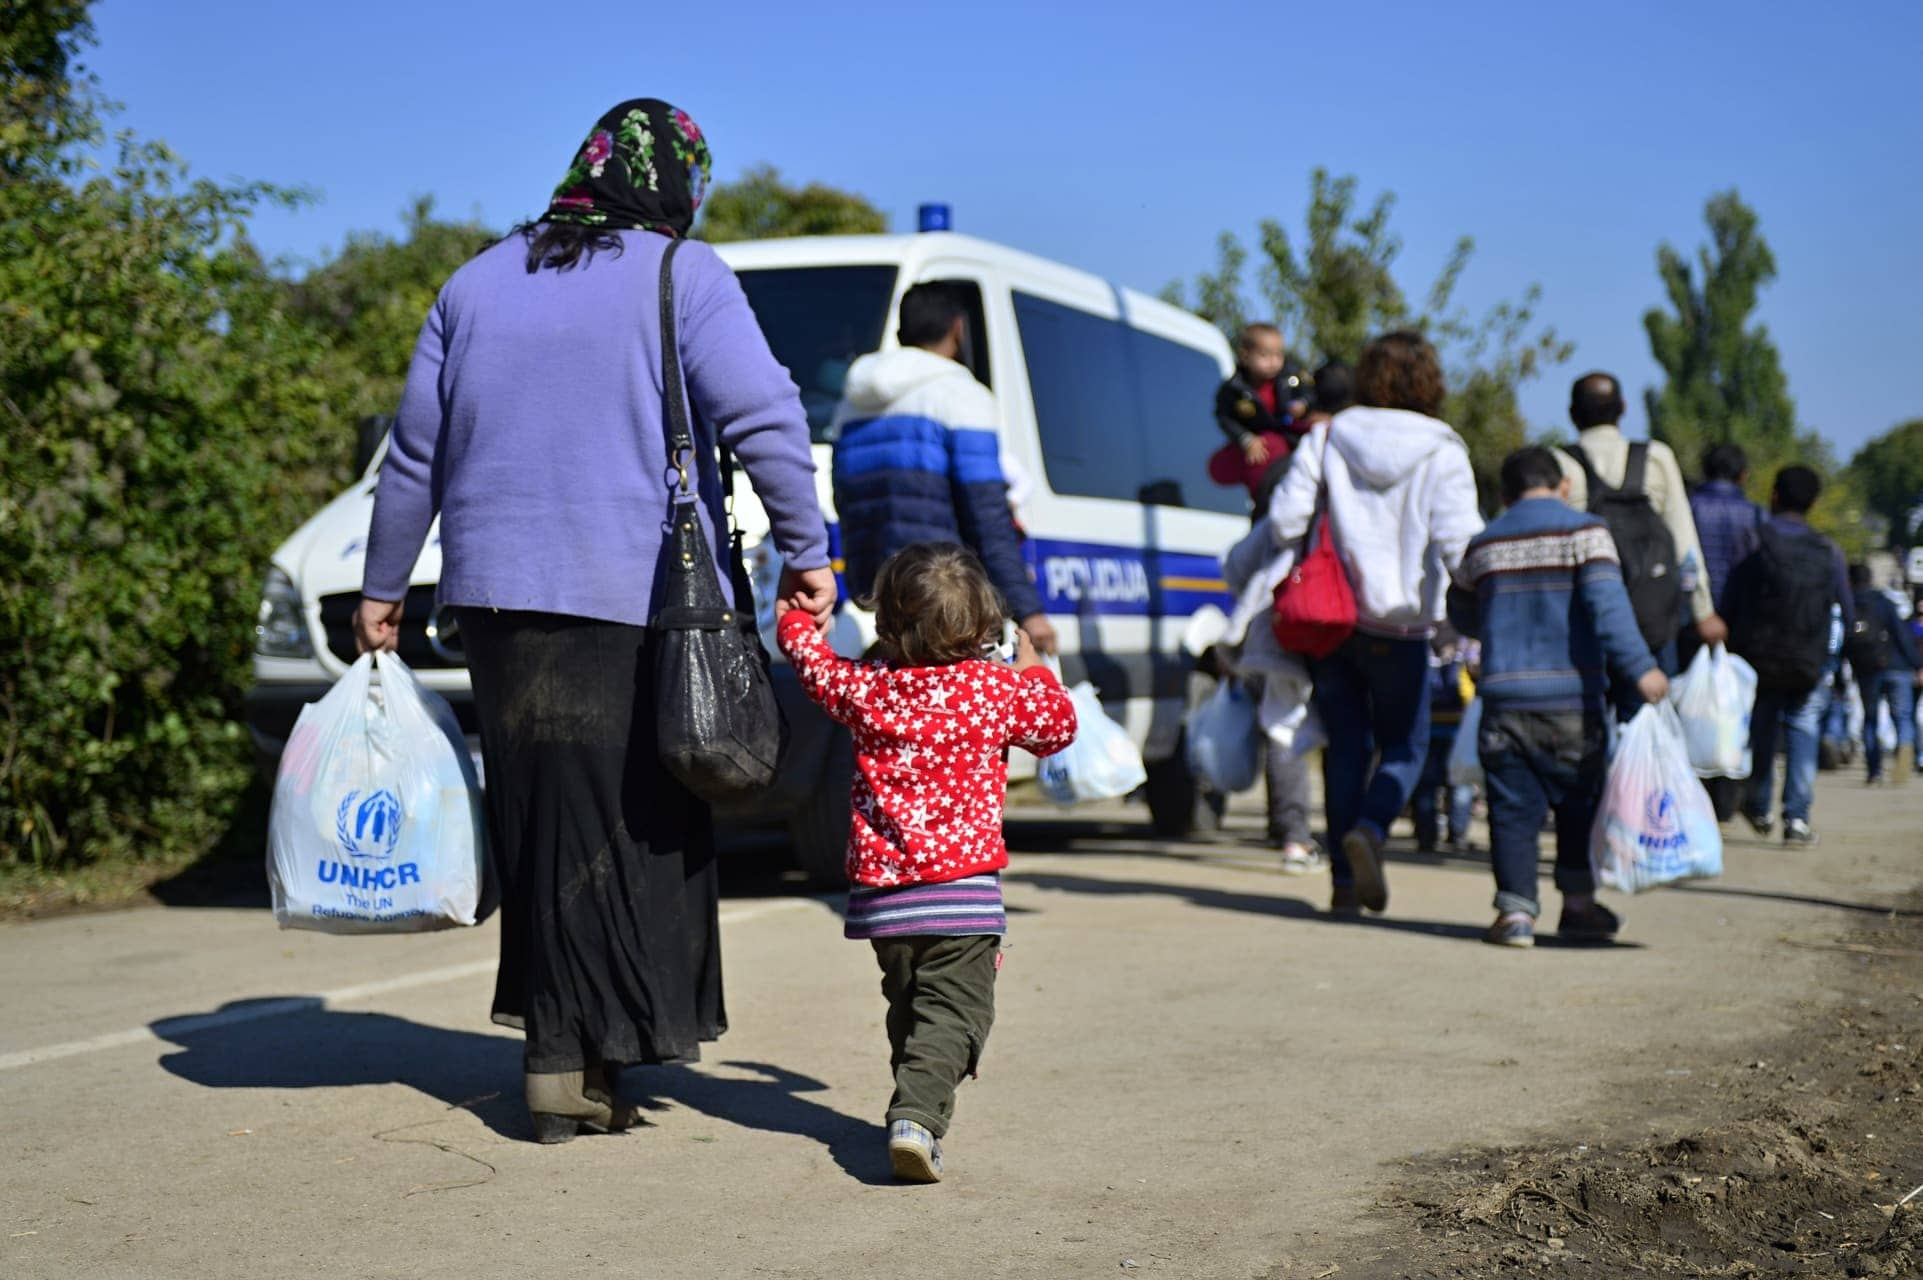 October 4, 2015; Bapska in Serbia. Photo of refugees leaving Serbia. They came to Bapska by buses and then they leaving Serbia and go to Croatia and then to Germany. Now they are waiting for entering EU in Croatia. October 4, 2015; Bapska in Serbia.